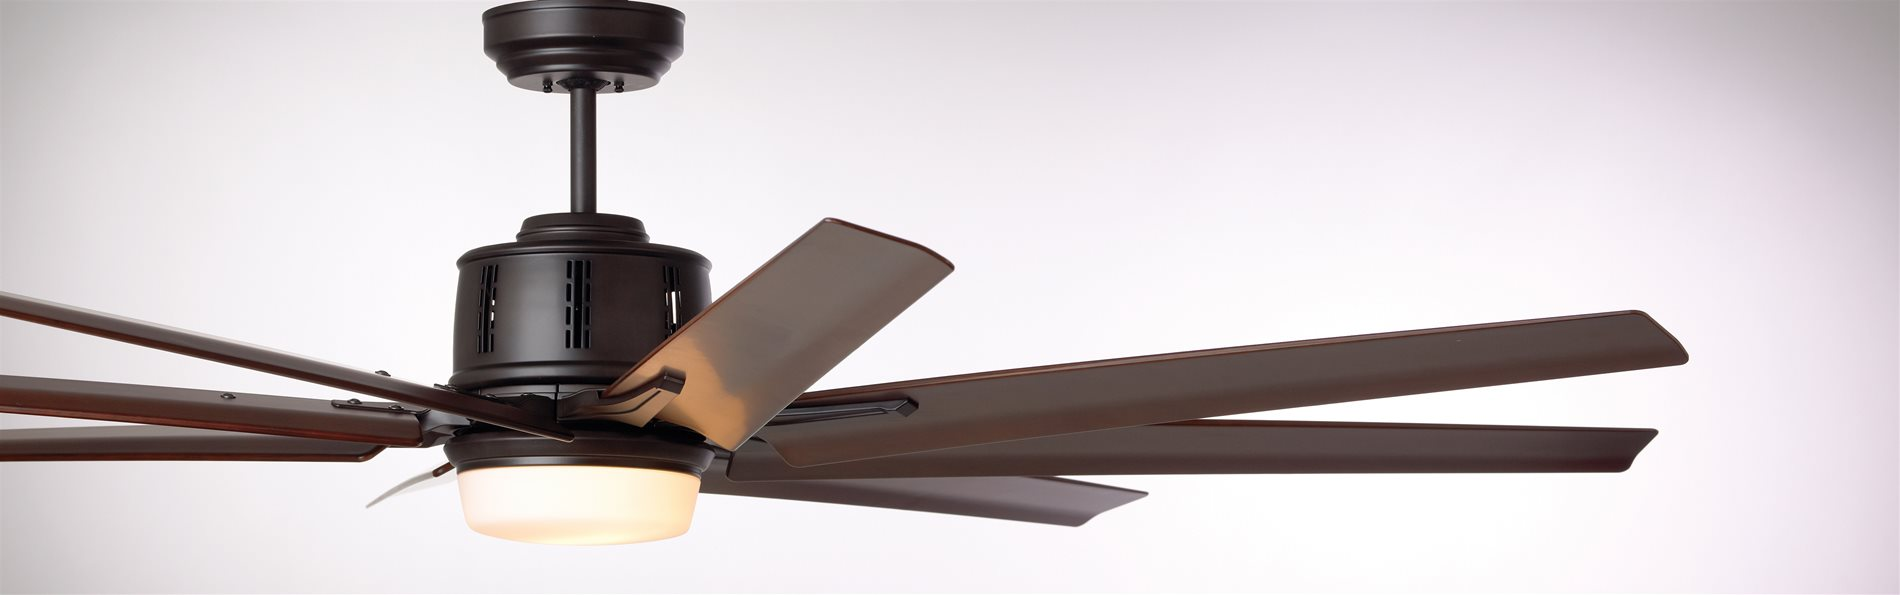 Emerson aira eco 72 inch oil rubbed bronze modern ceiling fan free - Emerson Aira Eco 72 Modern Contemporary Ceiling Fan Em Cf985 Orb See Details Images Videos Zoom